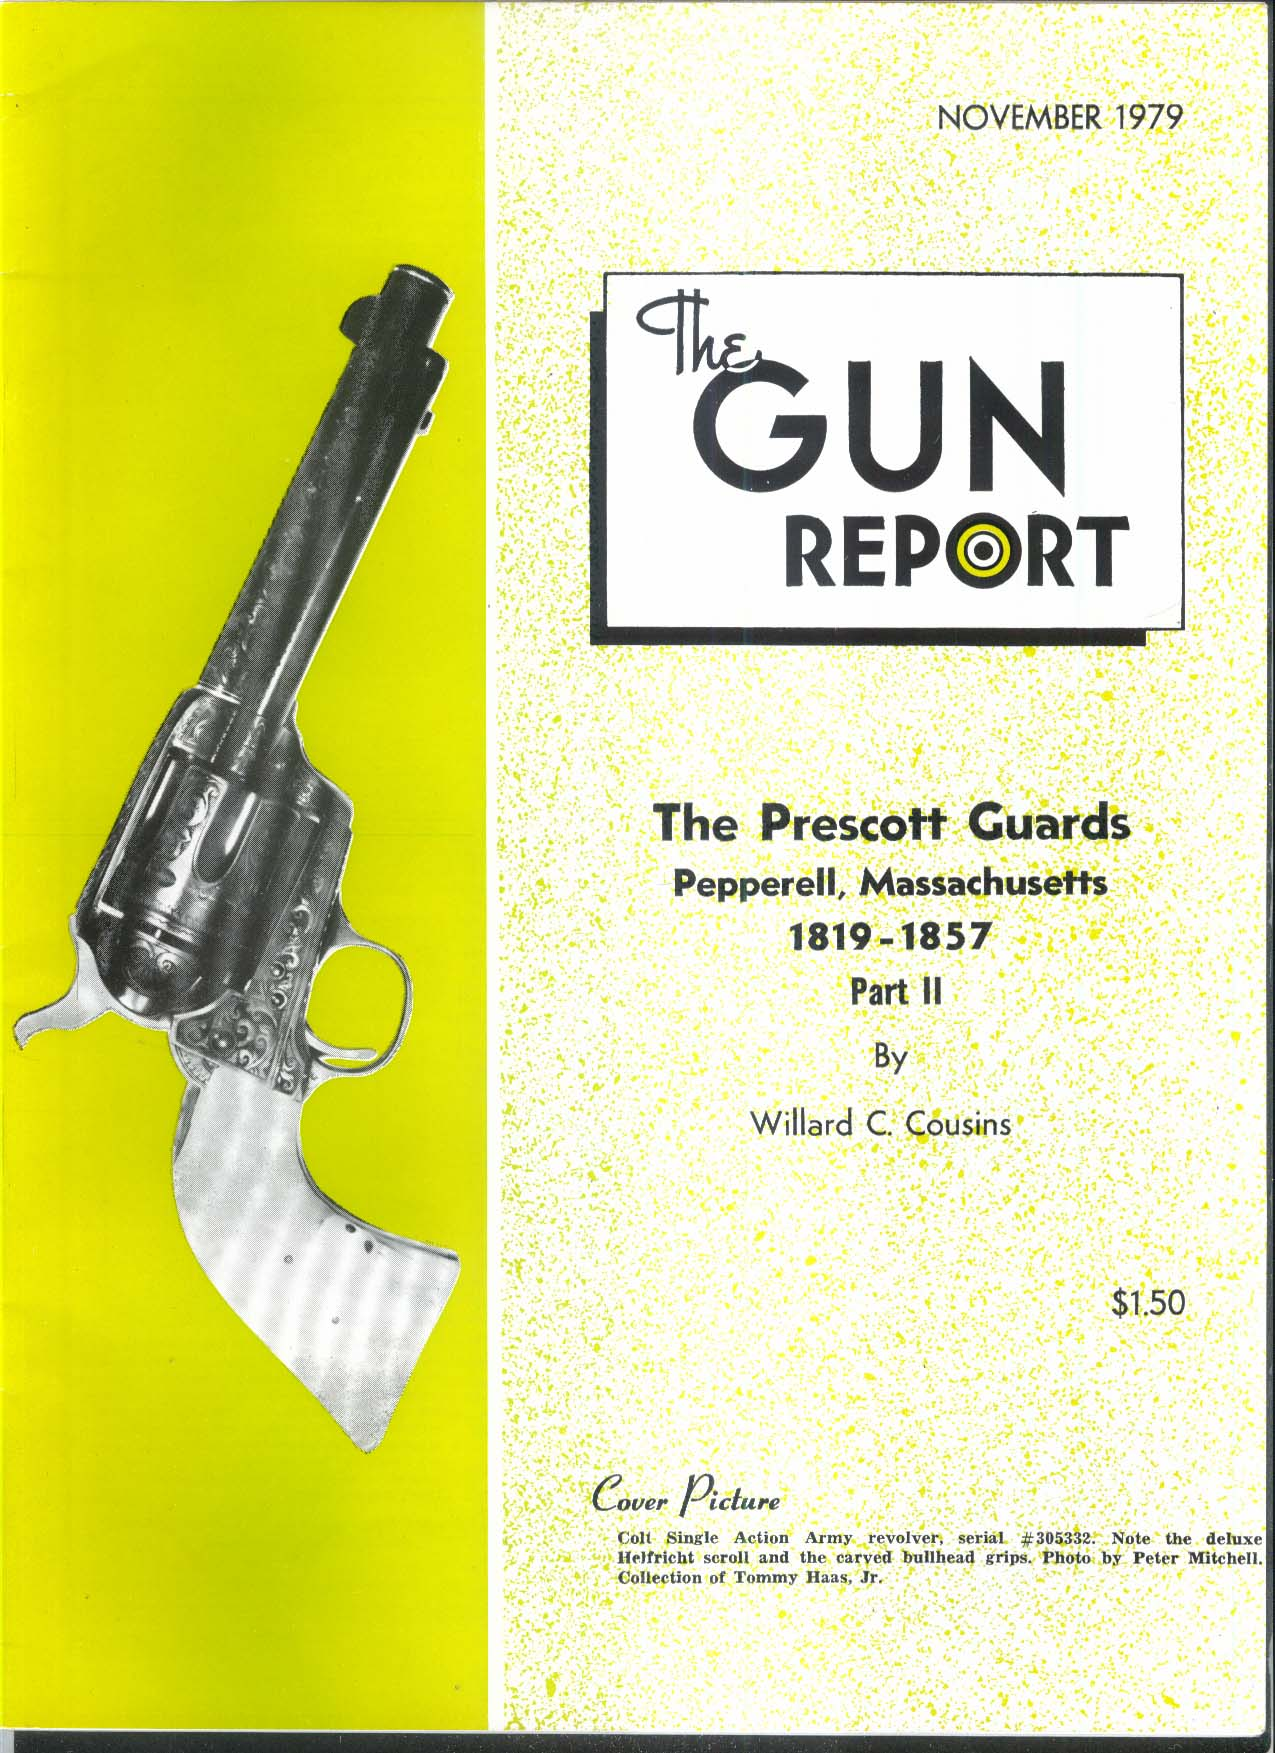 GUN REPORT Prescott Guards Pepperell MA Colt Single Action Army + 11 1979